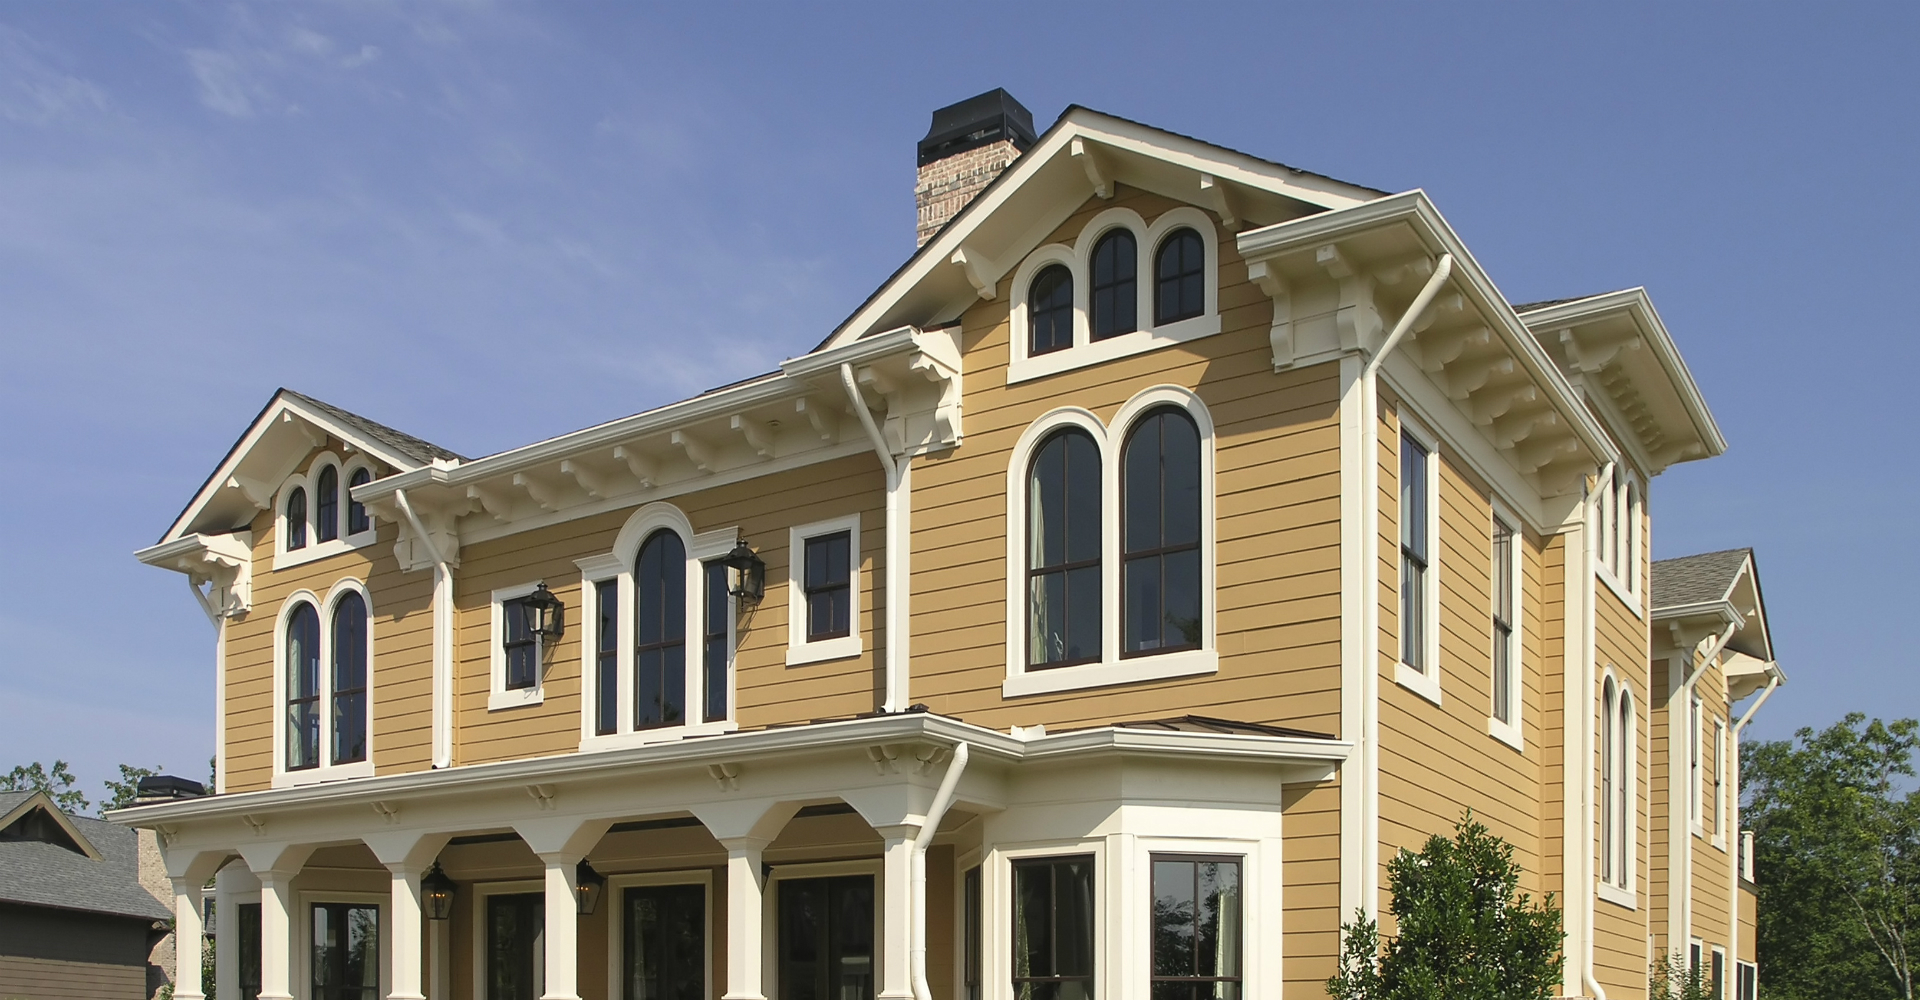 The Diffe Types Of House Siding And Their Pros Cons